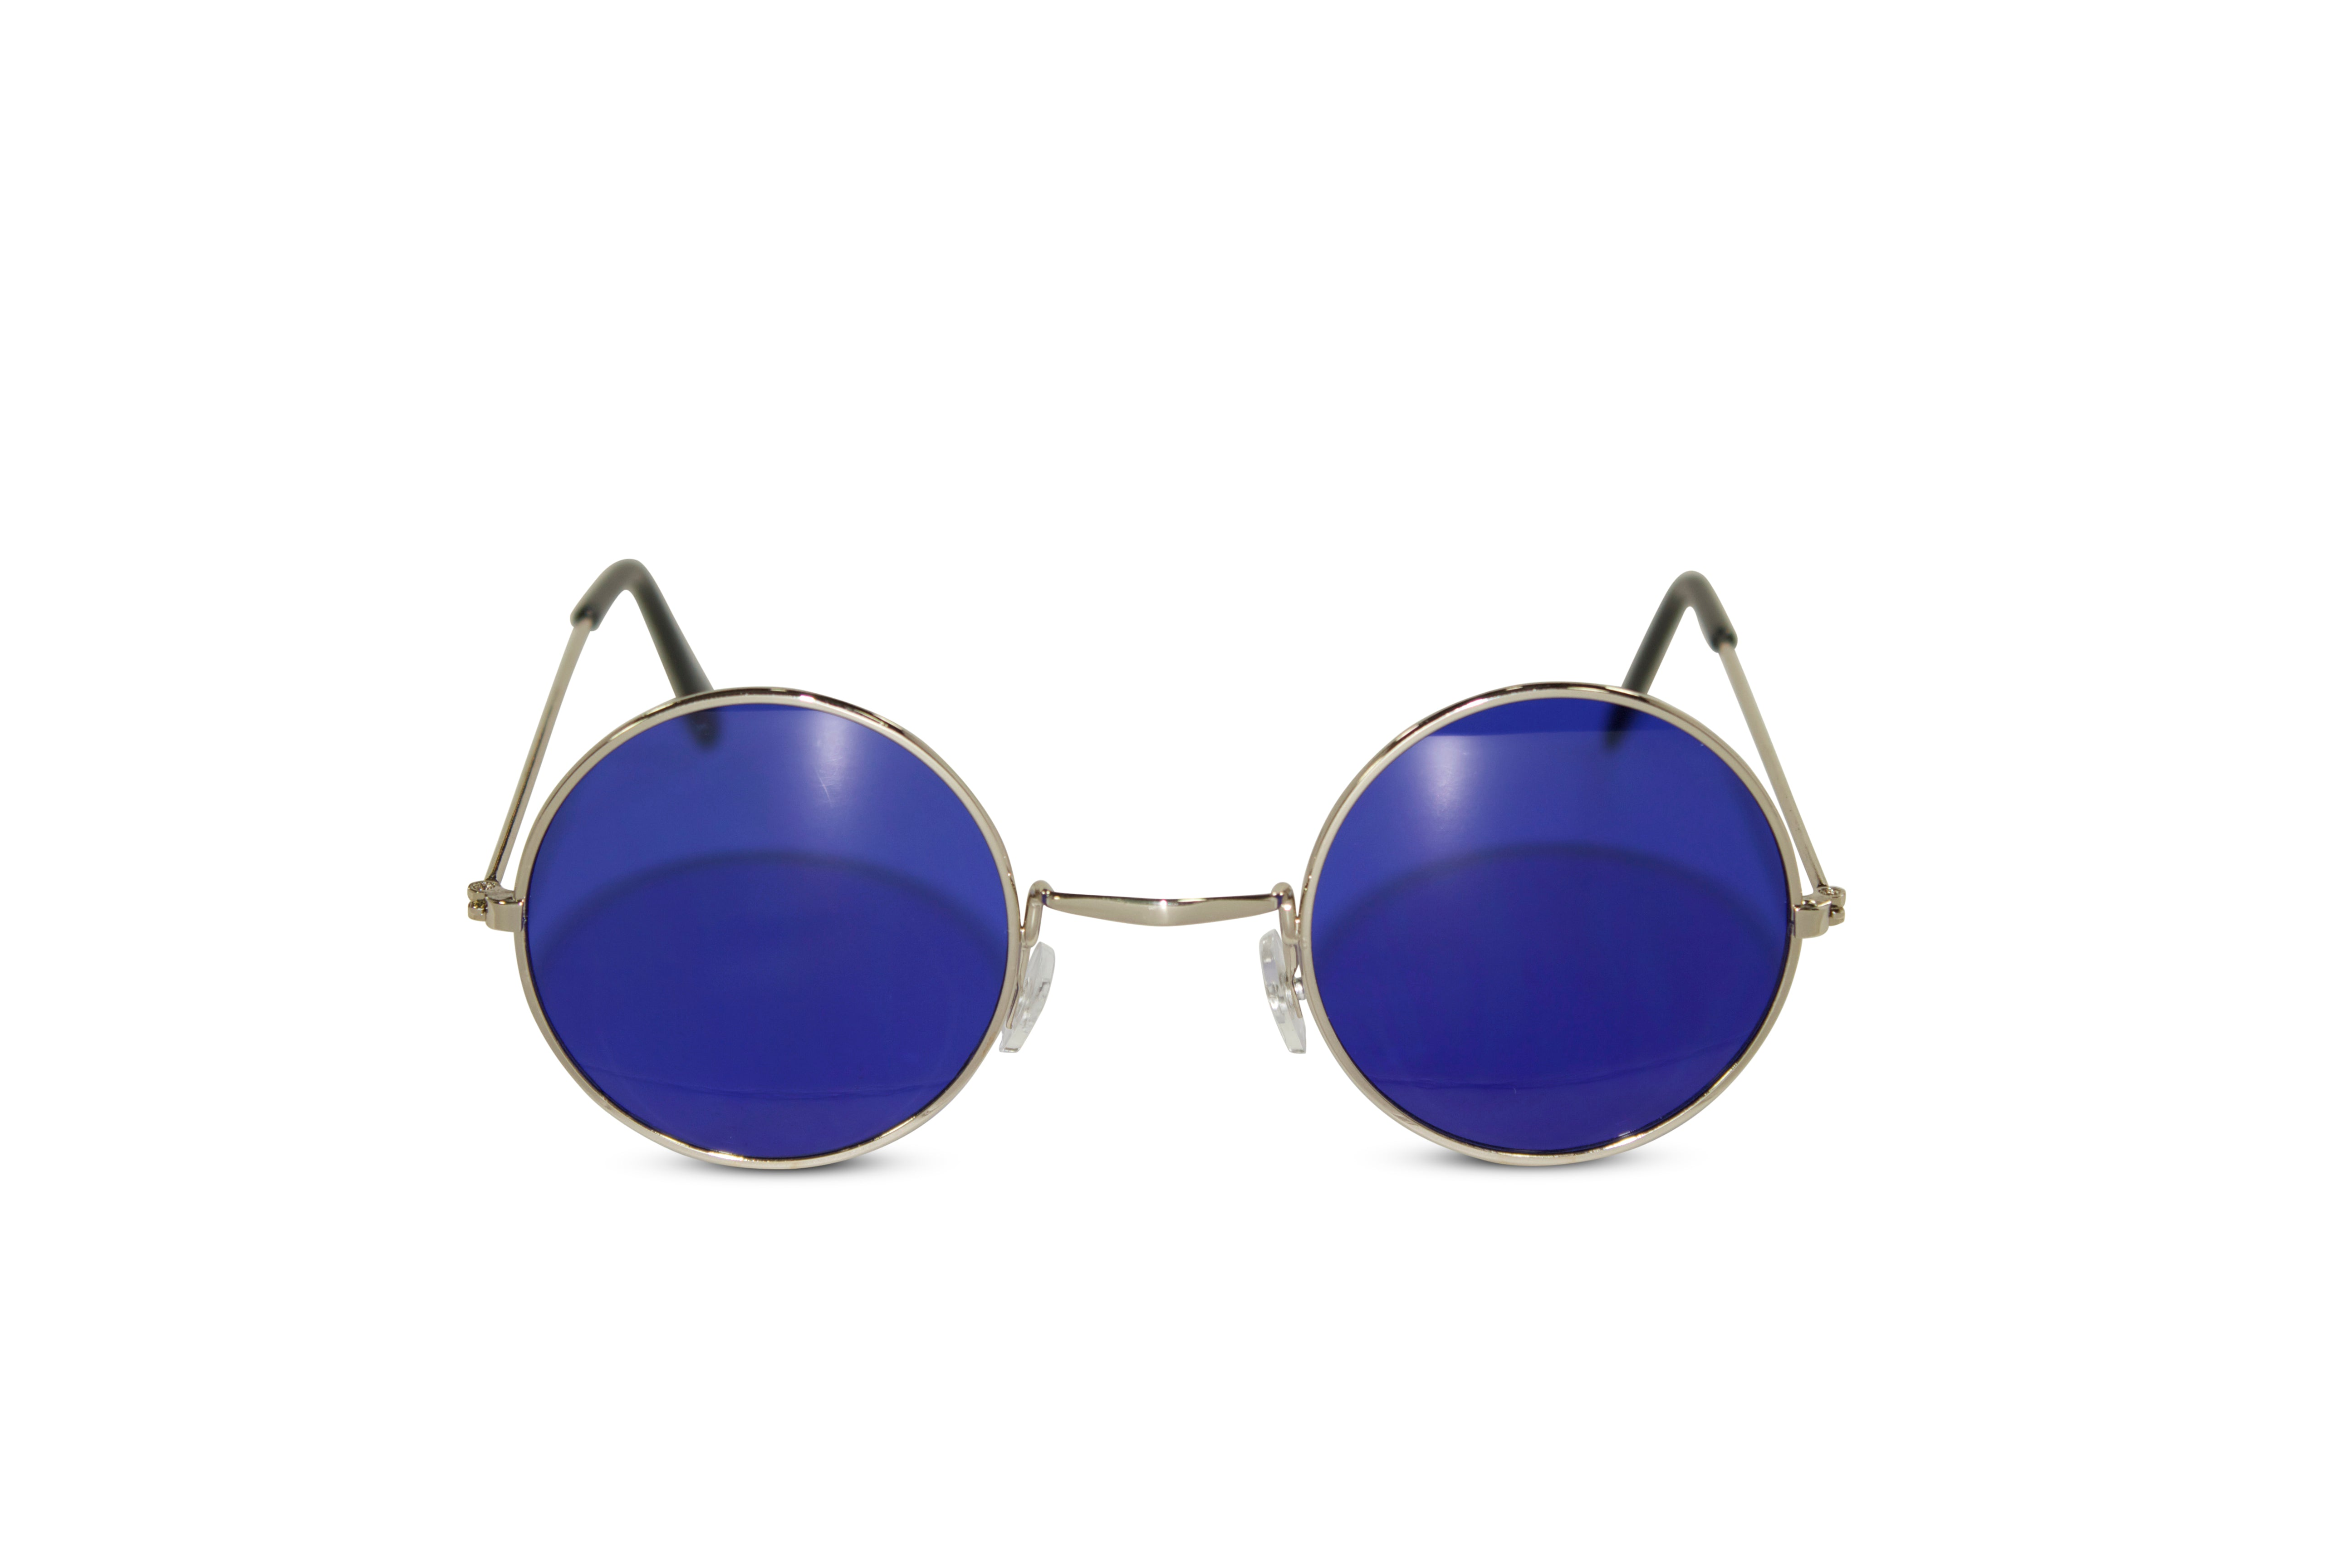 John Lennon Round Party Sunglasses with Various Colored Lens